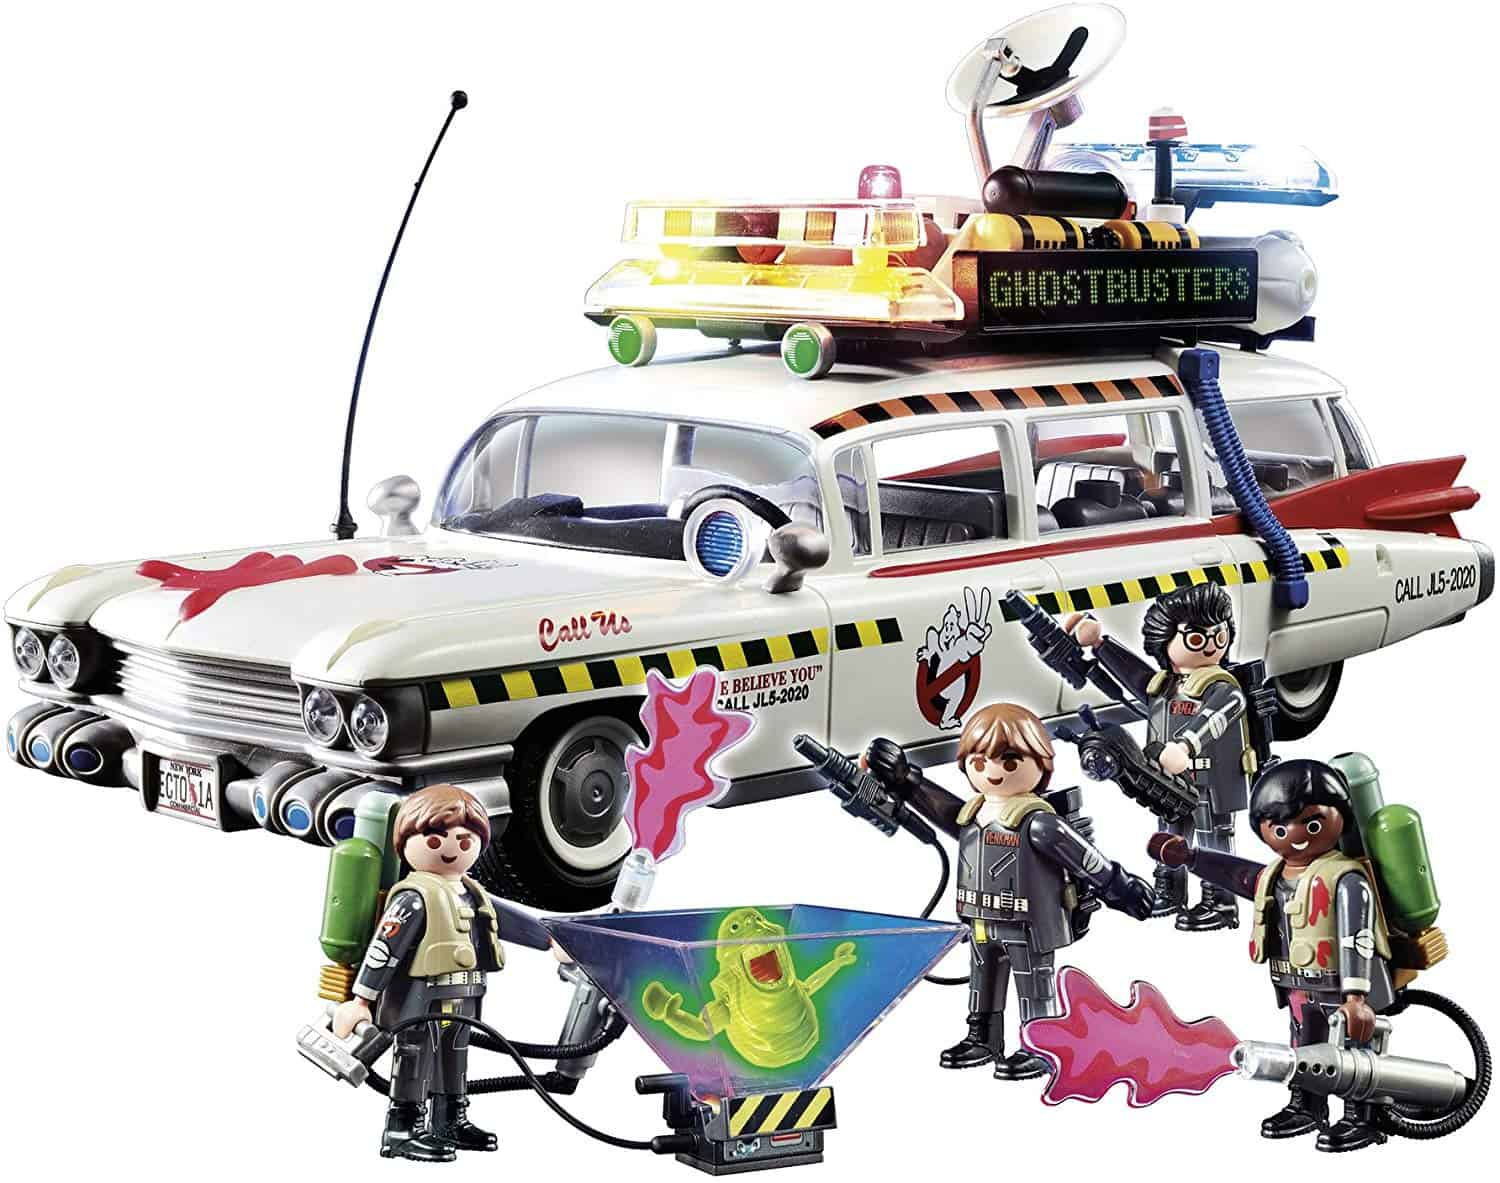 ghostbusters ecto1a 02 - Review: Playmobil's GHOSTBUSTERS Toys Are A Horror Parent's Dream